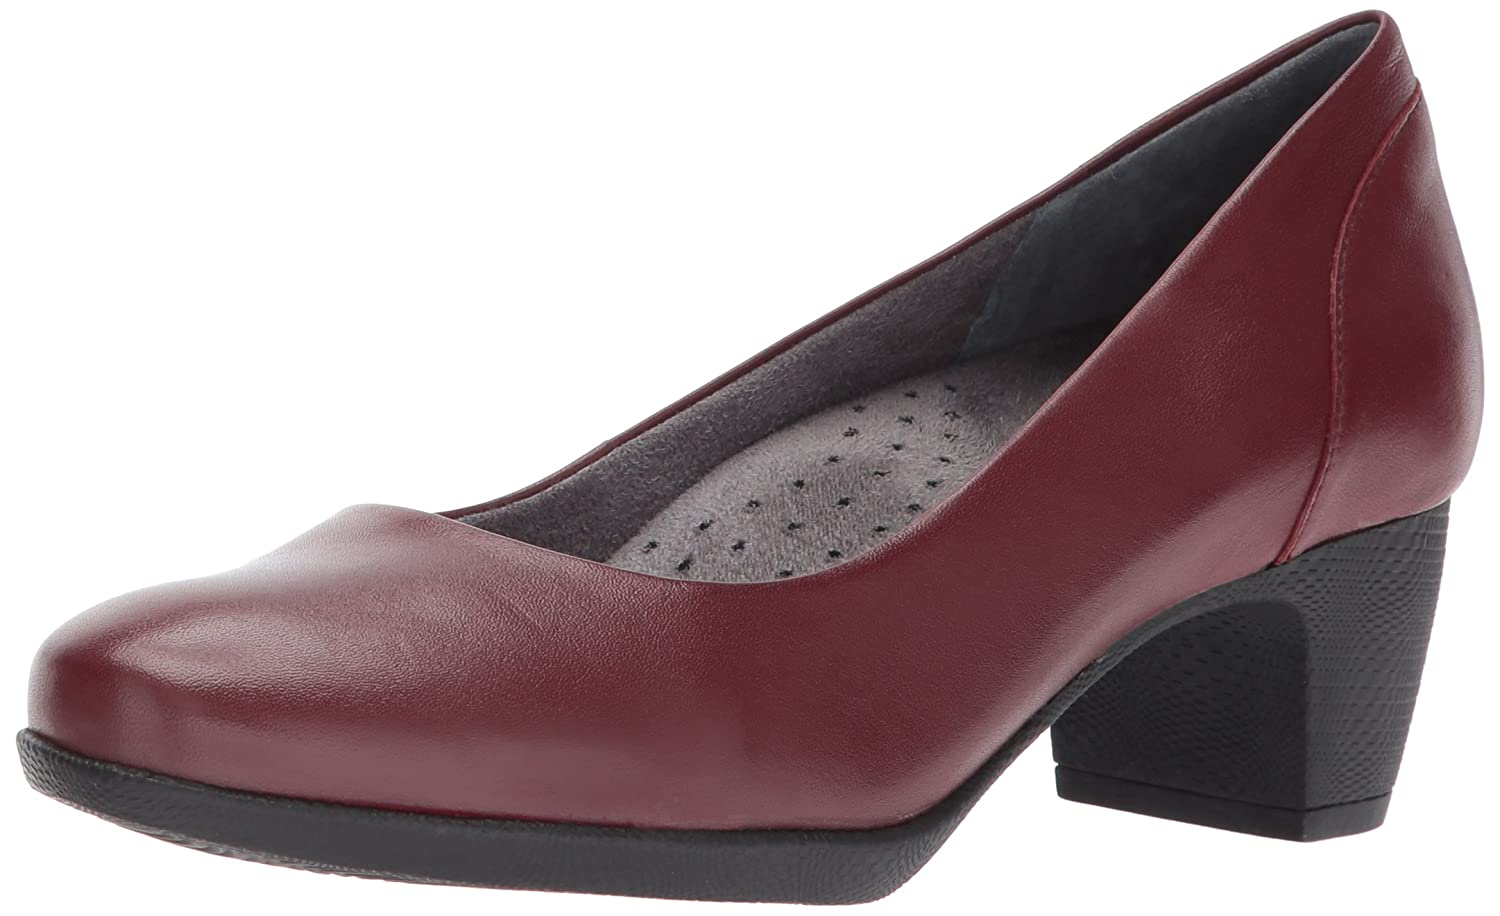 SoftWalk Women's Imperial Ii Dress Pump B01NALL21T 8 W US|Dark Red